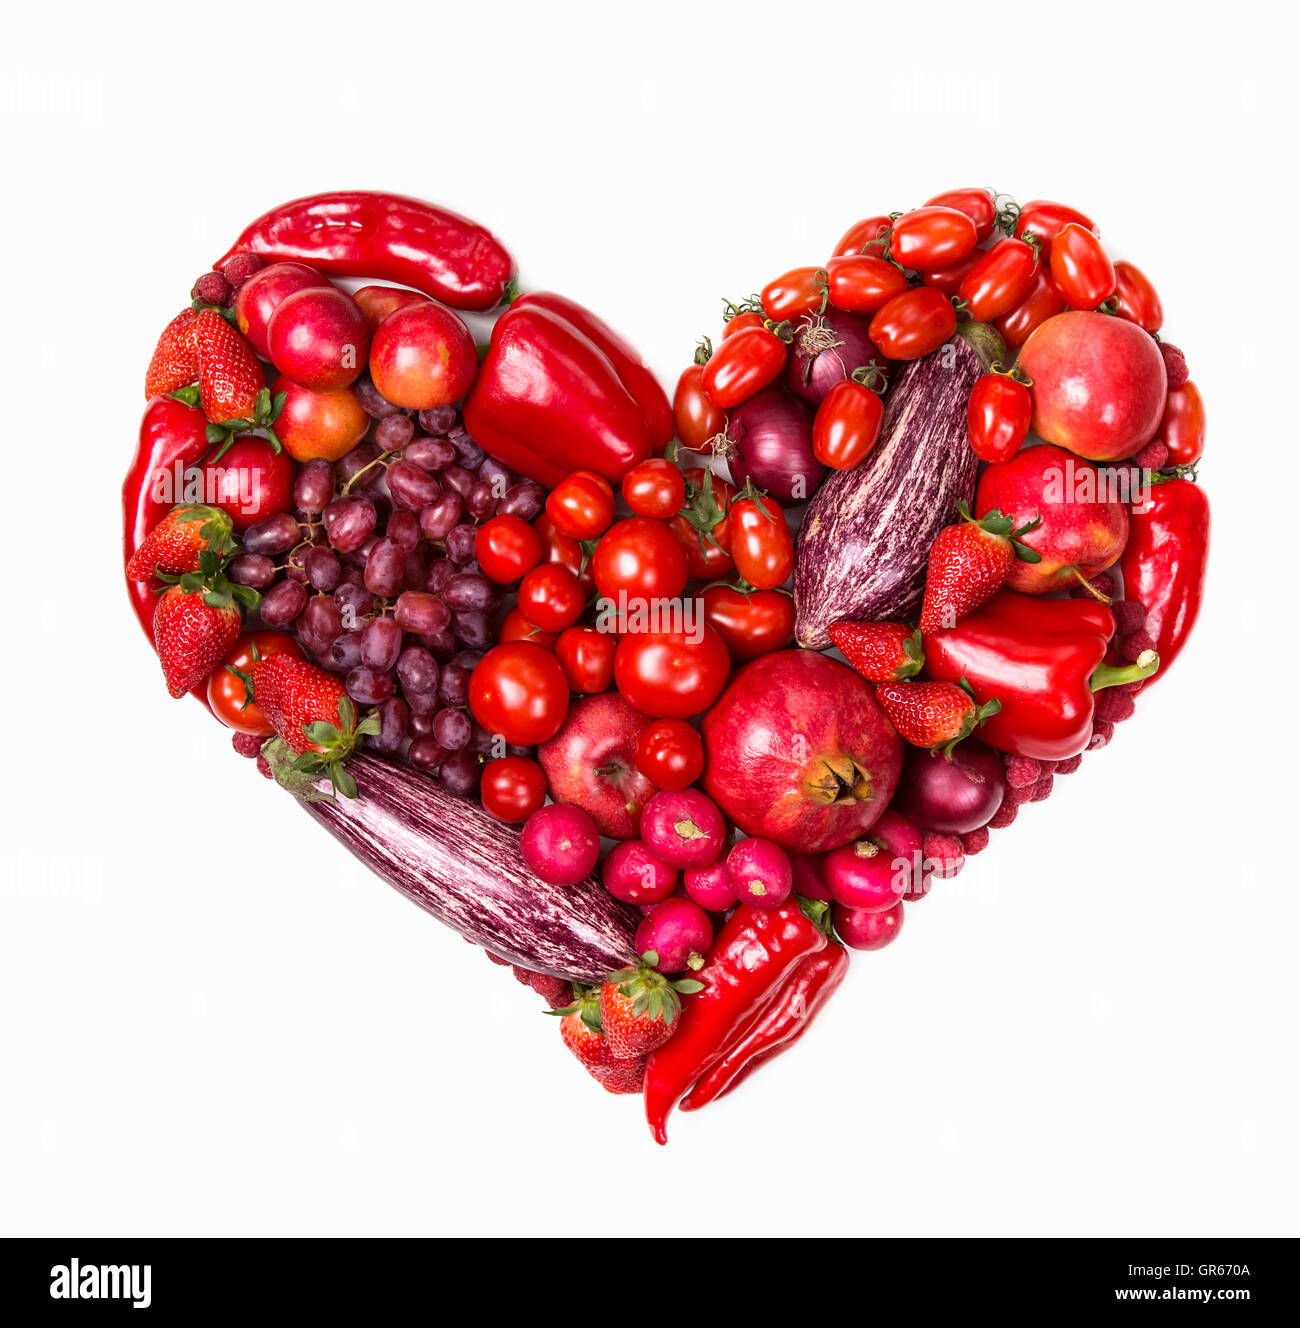 Heart of red fruits and vegetables isolated on a white background - Stock Image